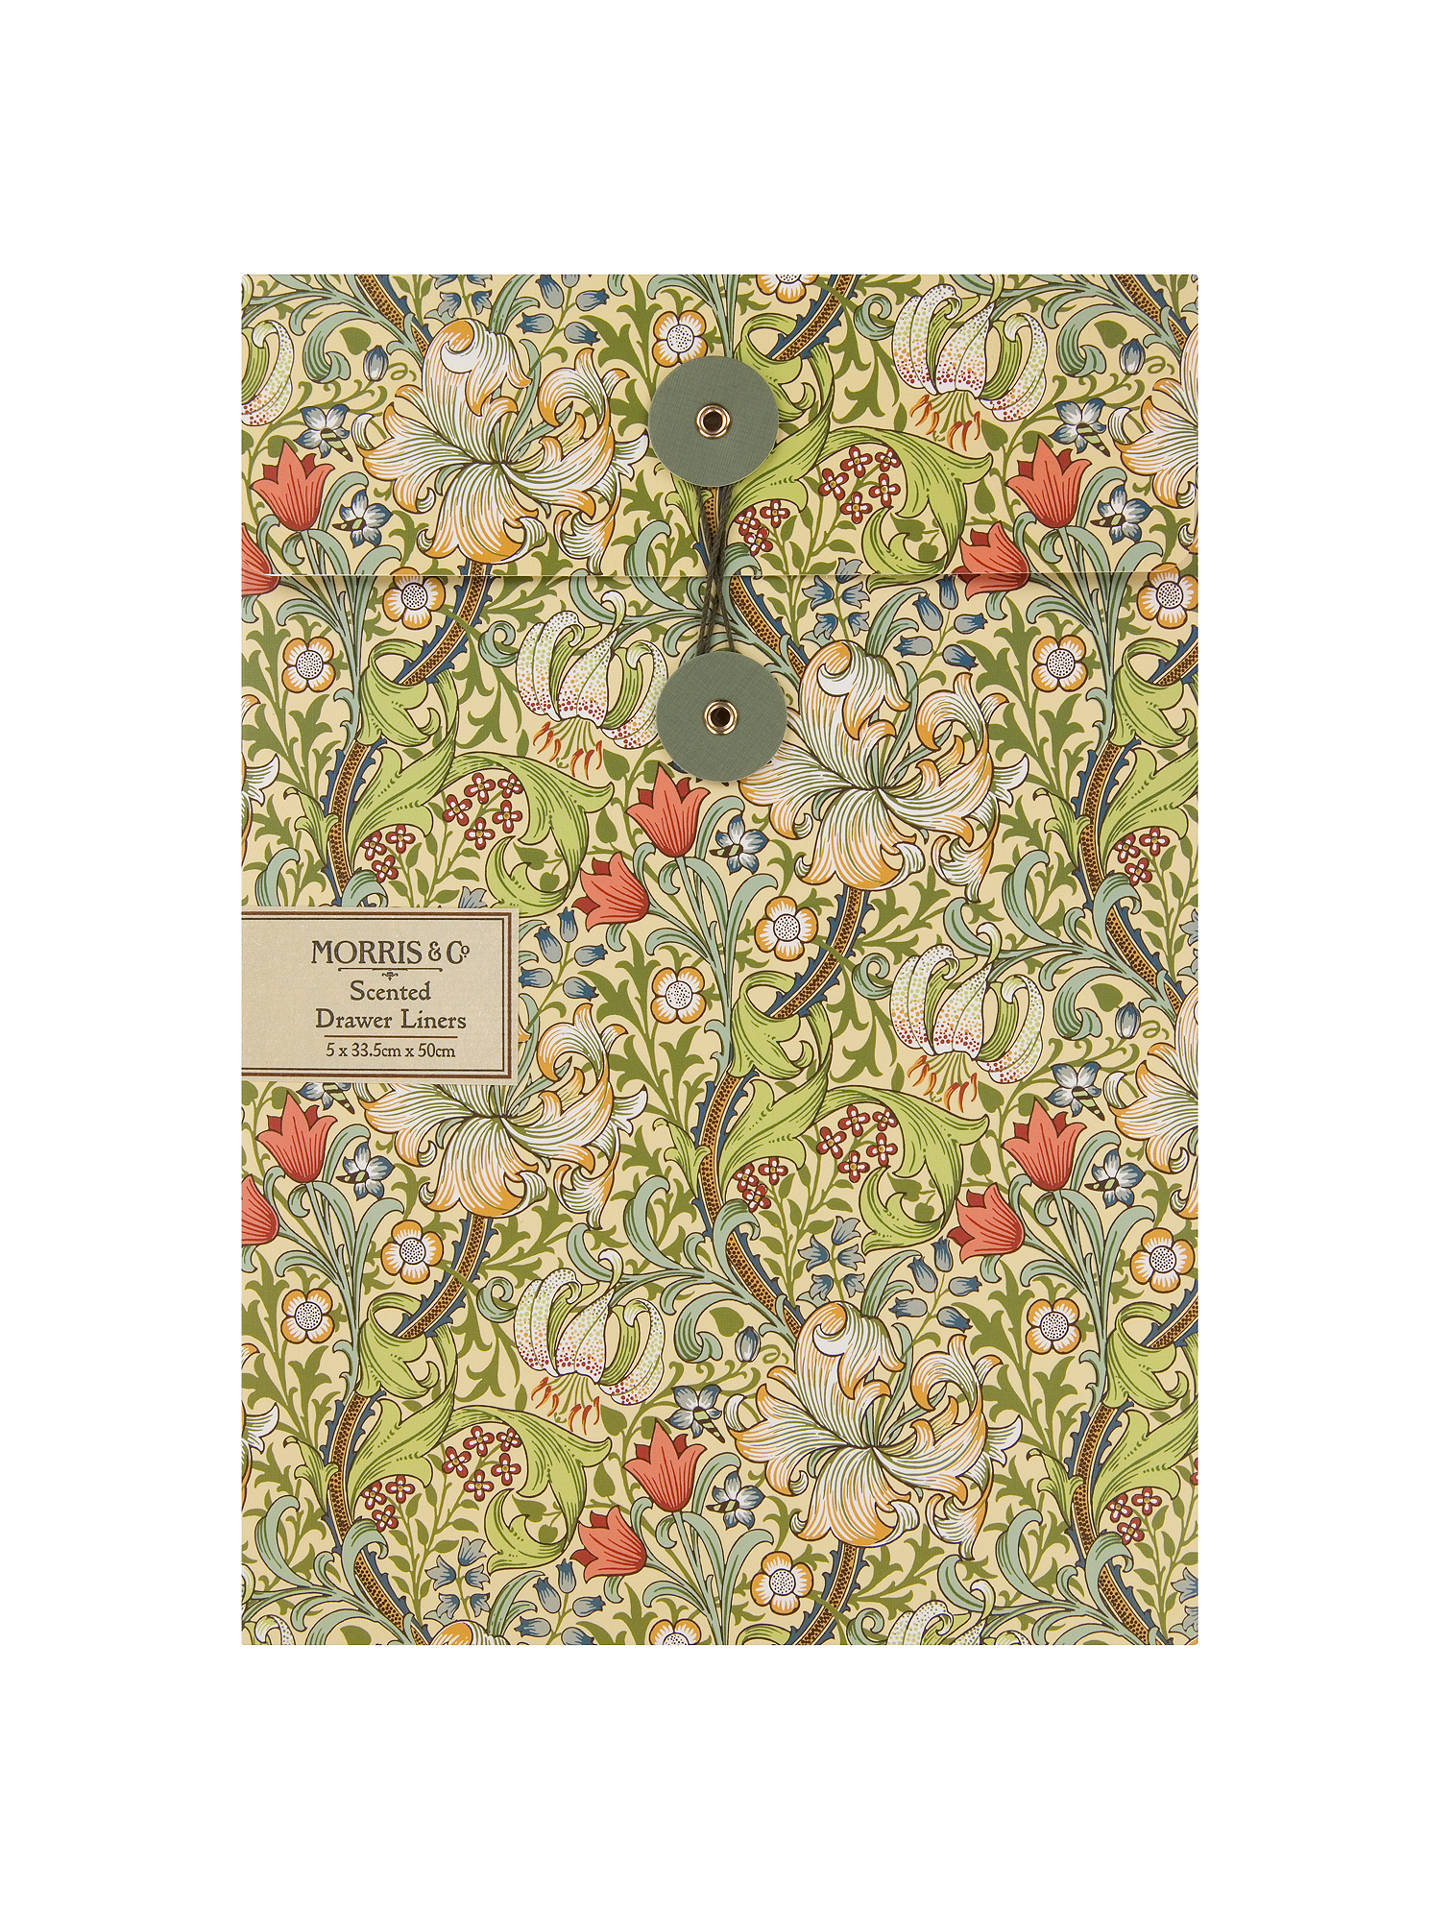 Buy Morris & Co. Golden Lily Drawer Liners, Pack of 5 Online at johnlewis.com